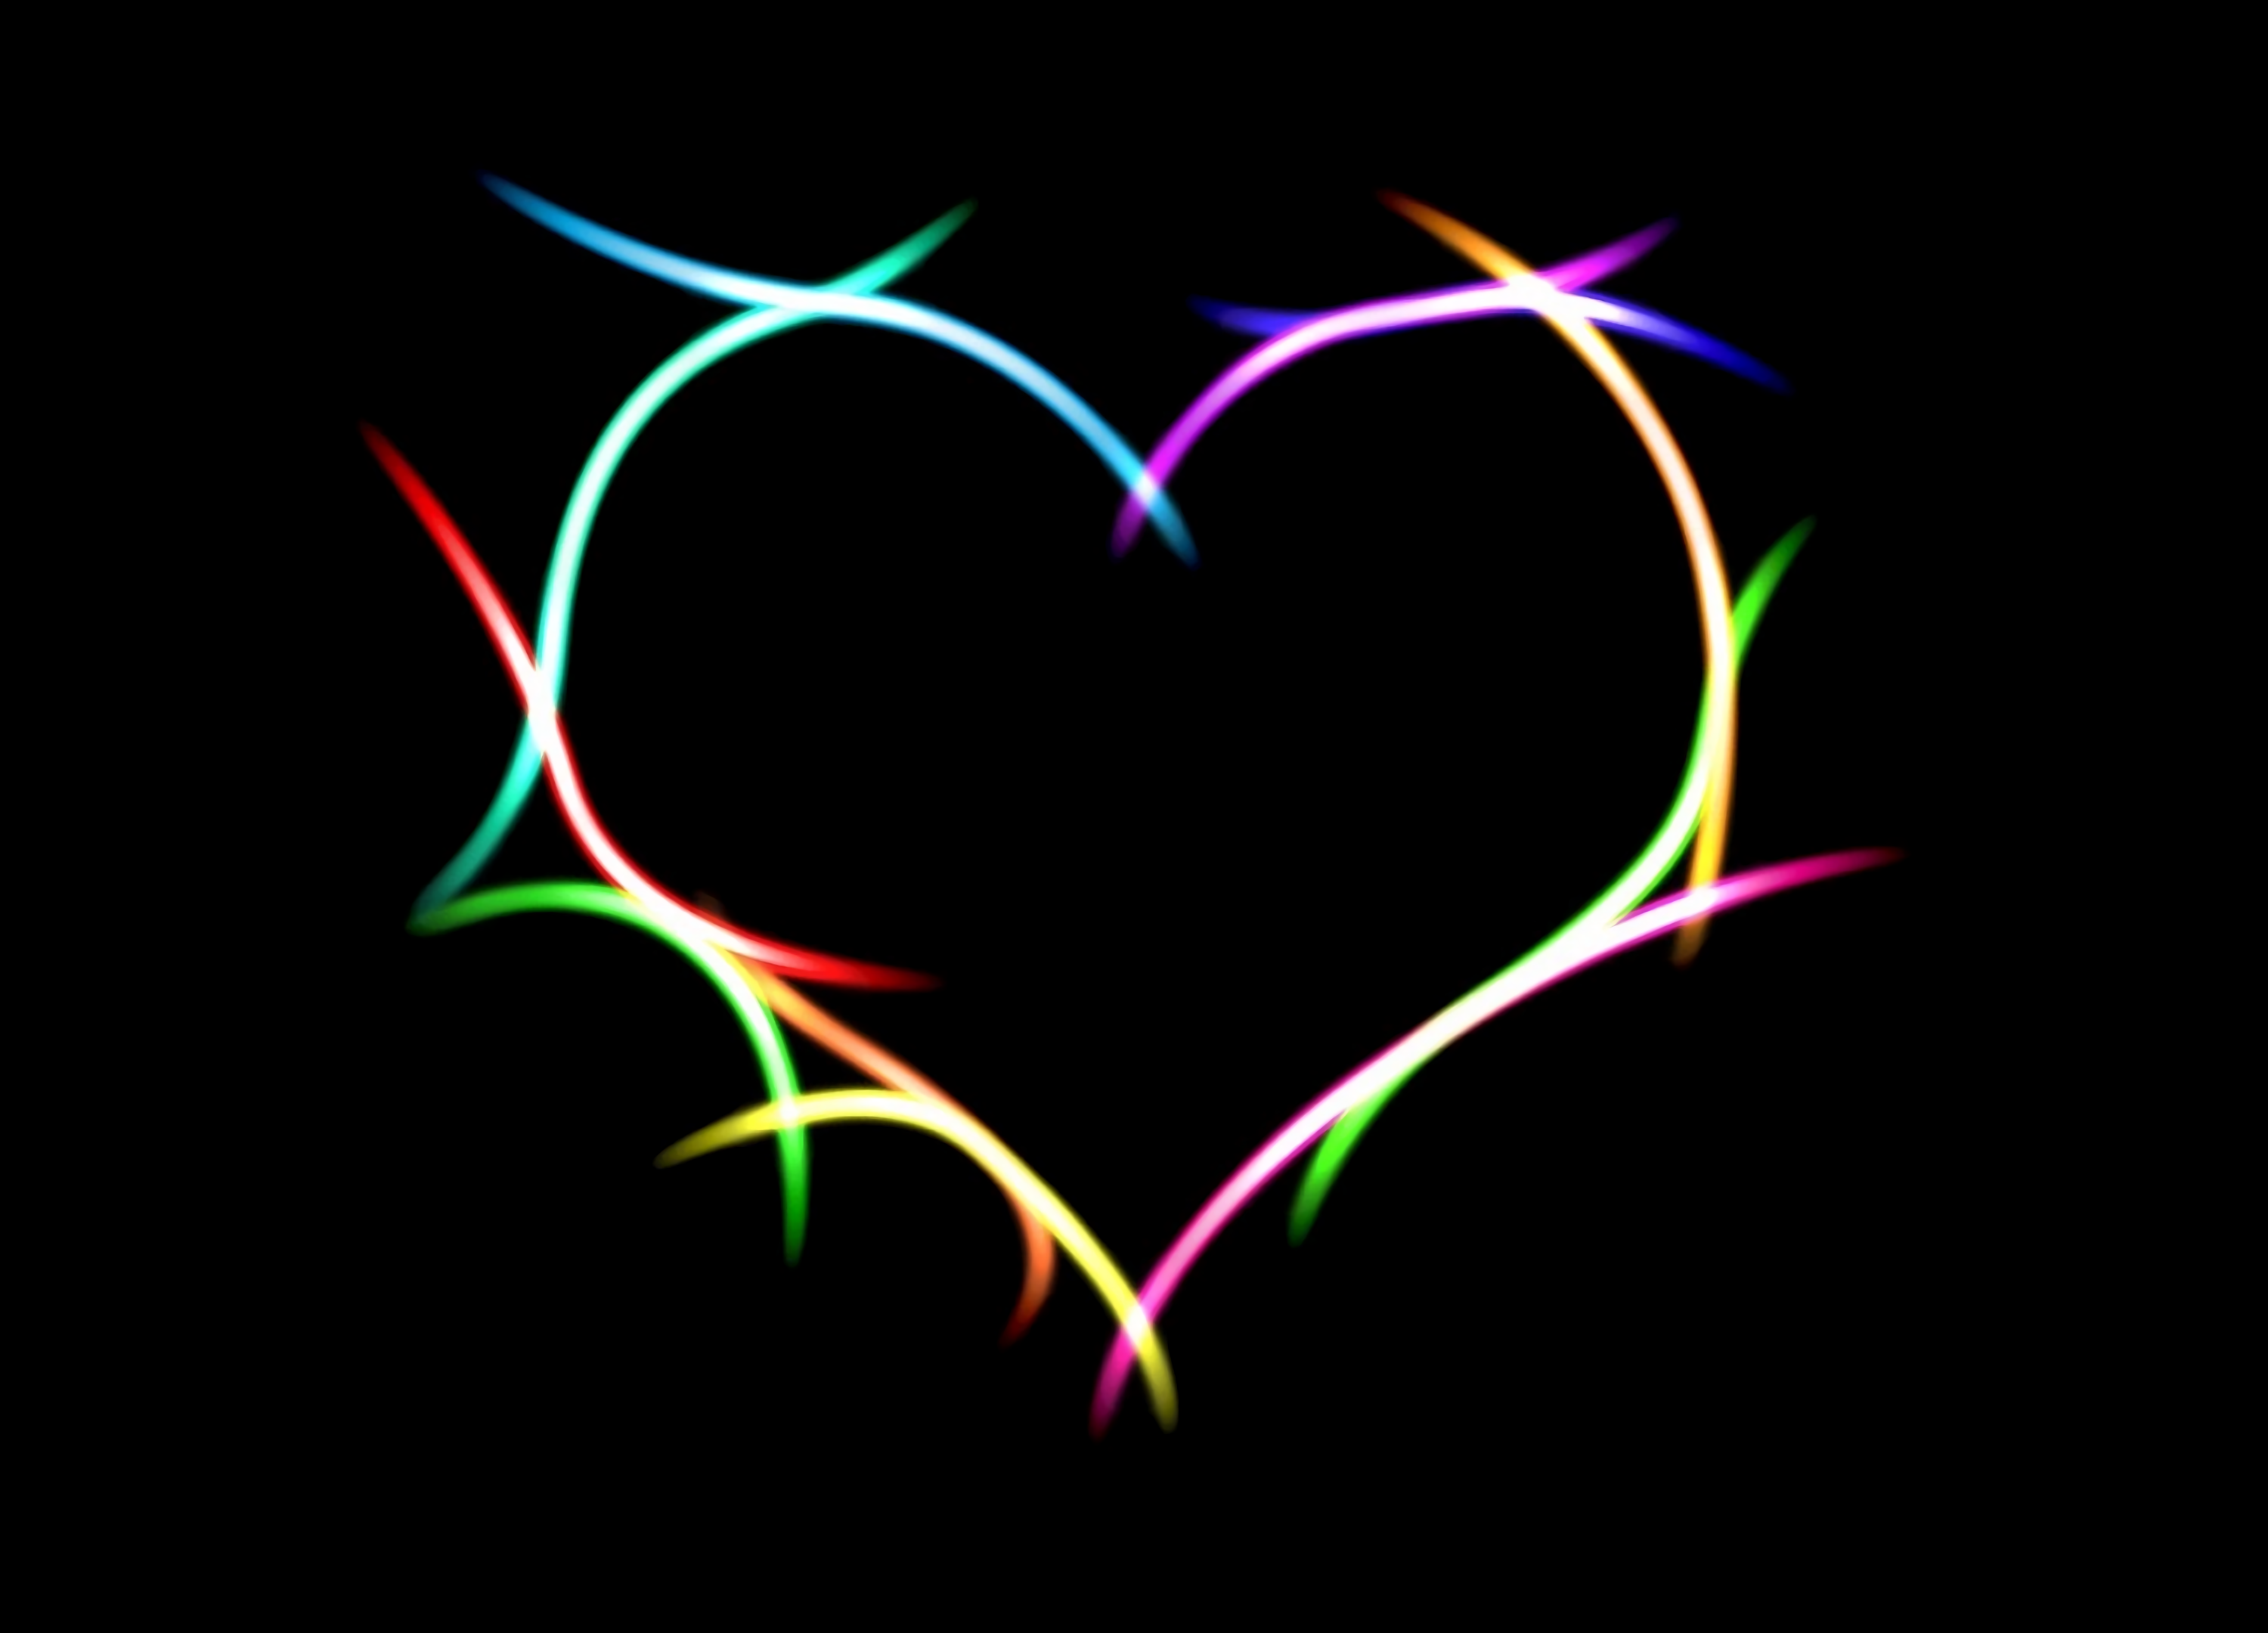 Love Hd Wallpaper Black Love Heart Background 3423 Hd